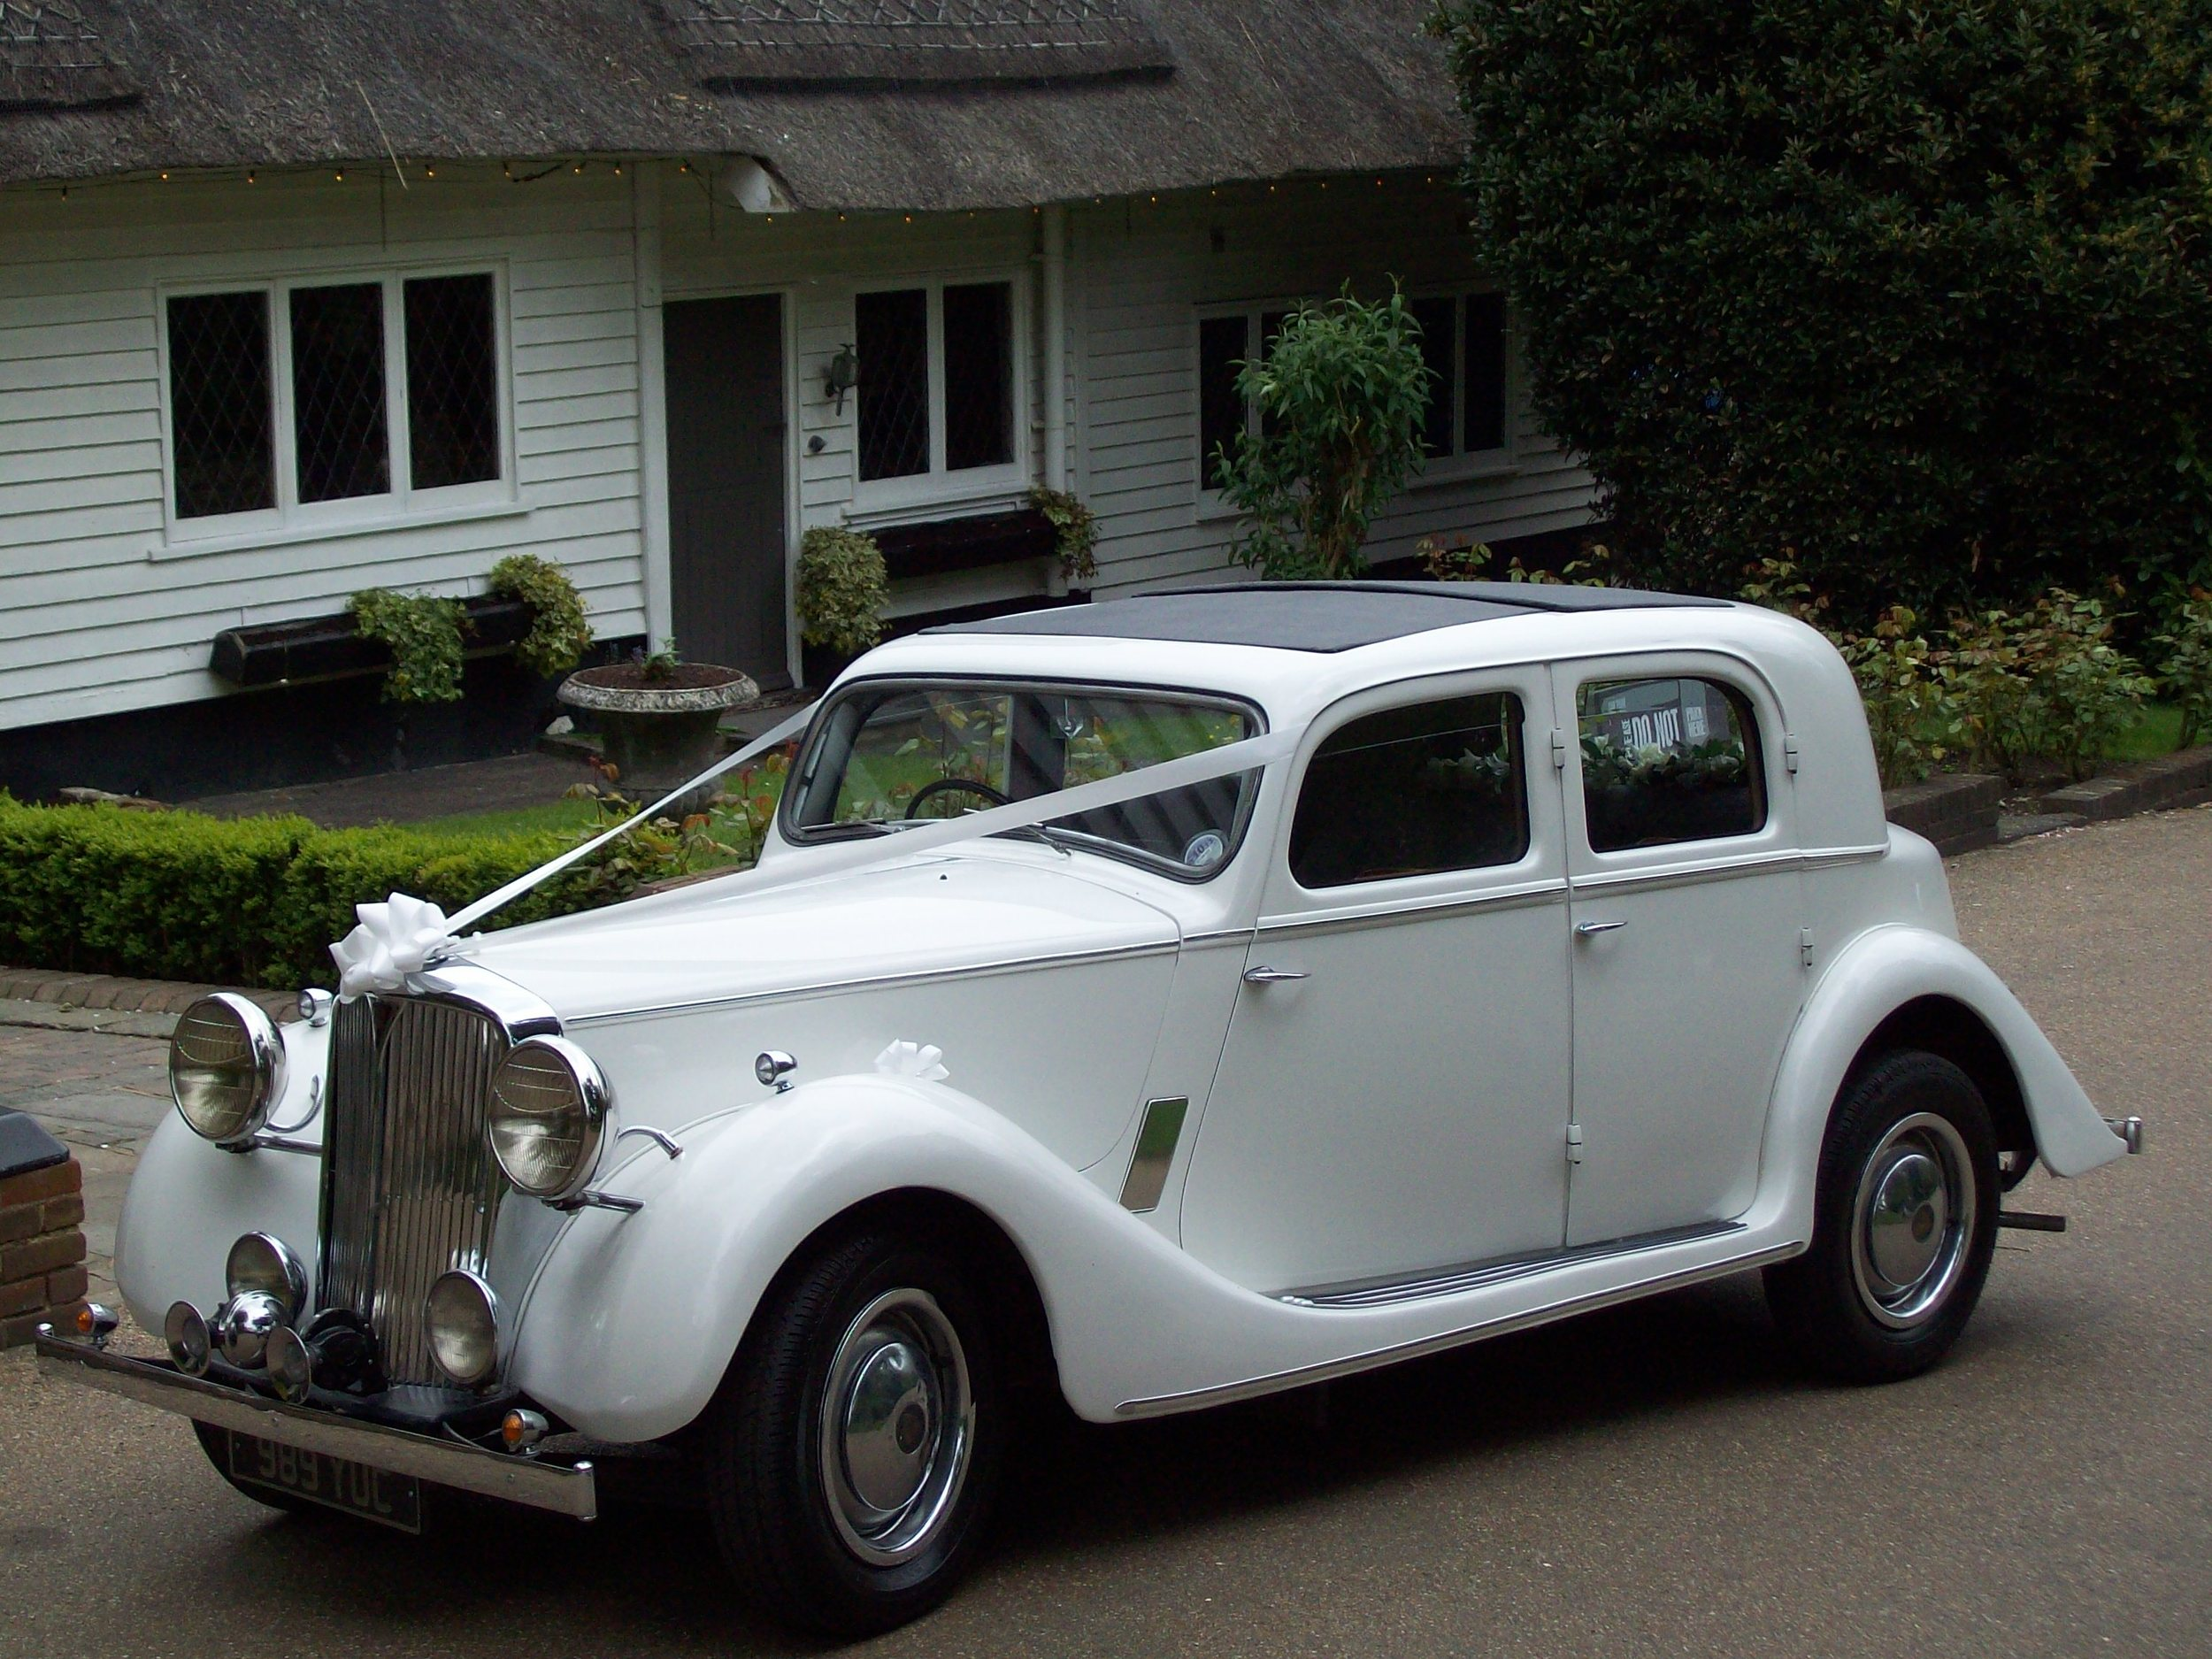 vintage wedding car.JPG